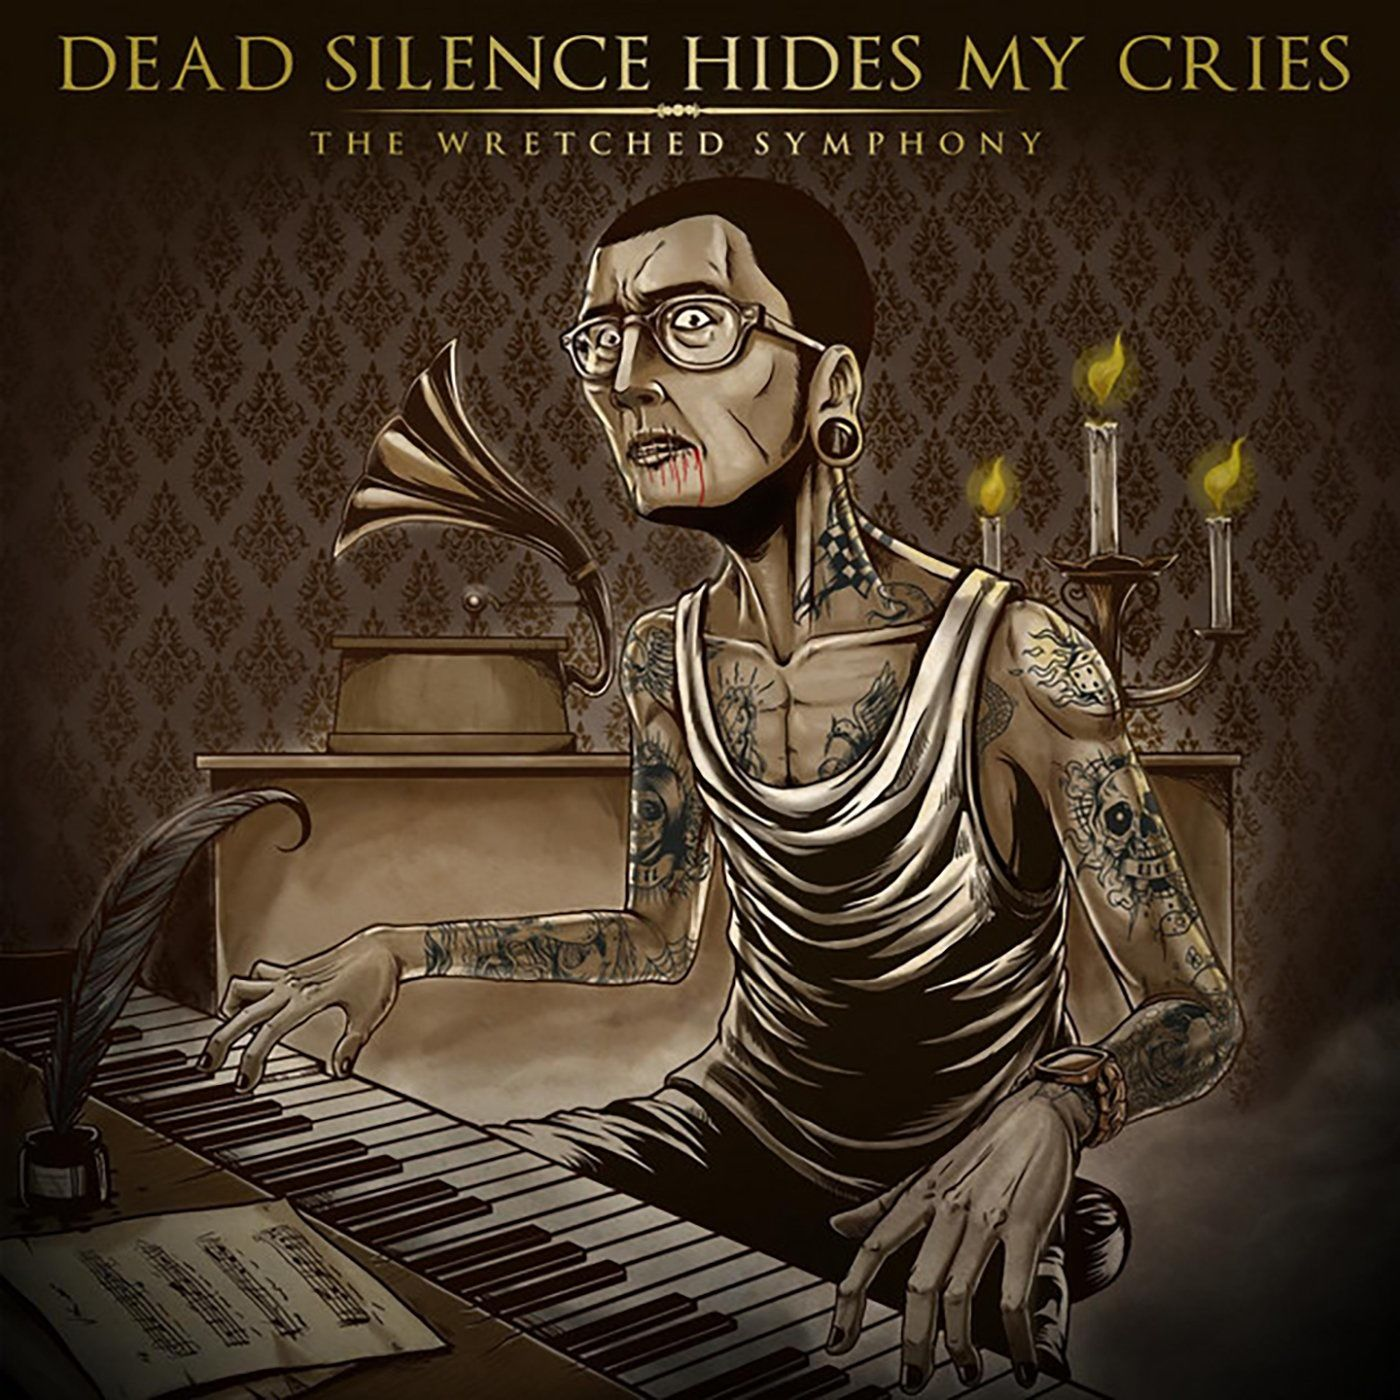 Dead Silence Hides My Cries - The Wretched Symphony (2010)